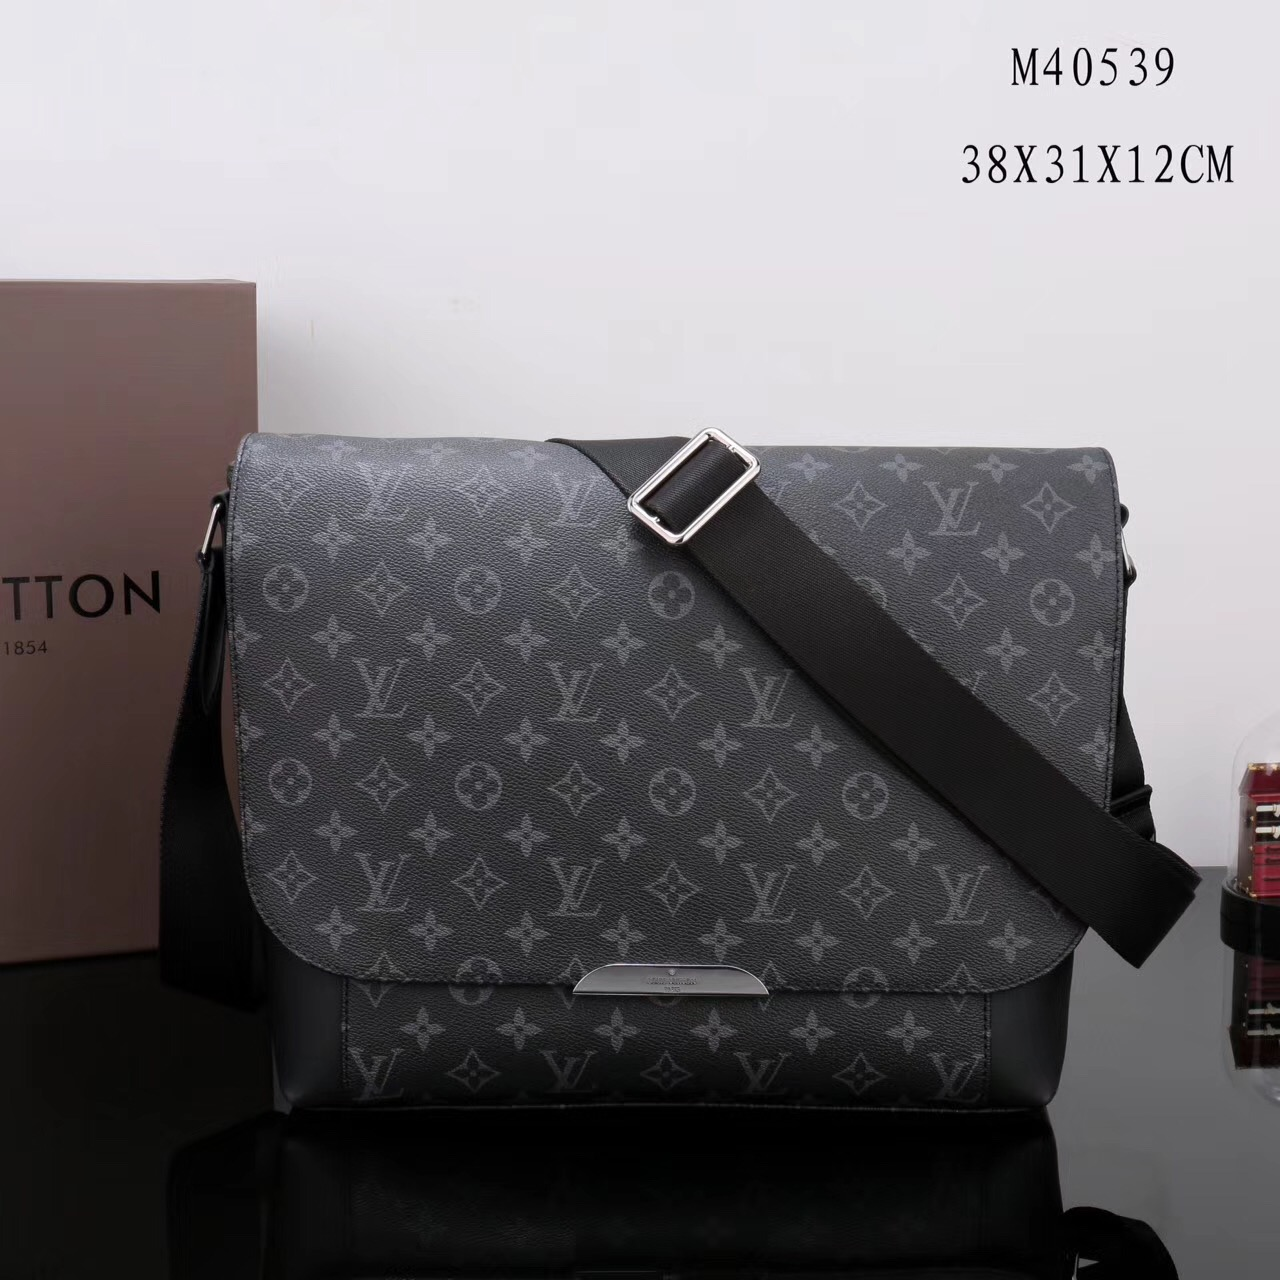 58a142c0738d Men LV Louis Vuitton M40539 Monogram Messenger bags Handbags Gray ...